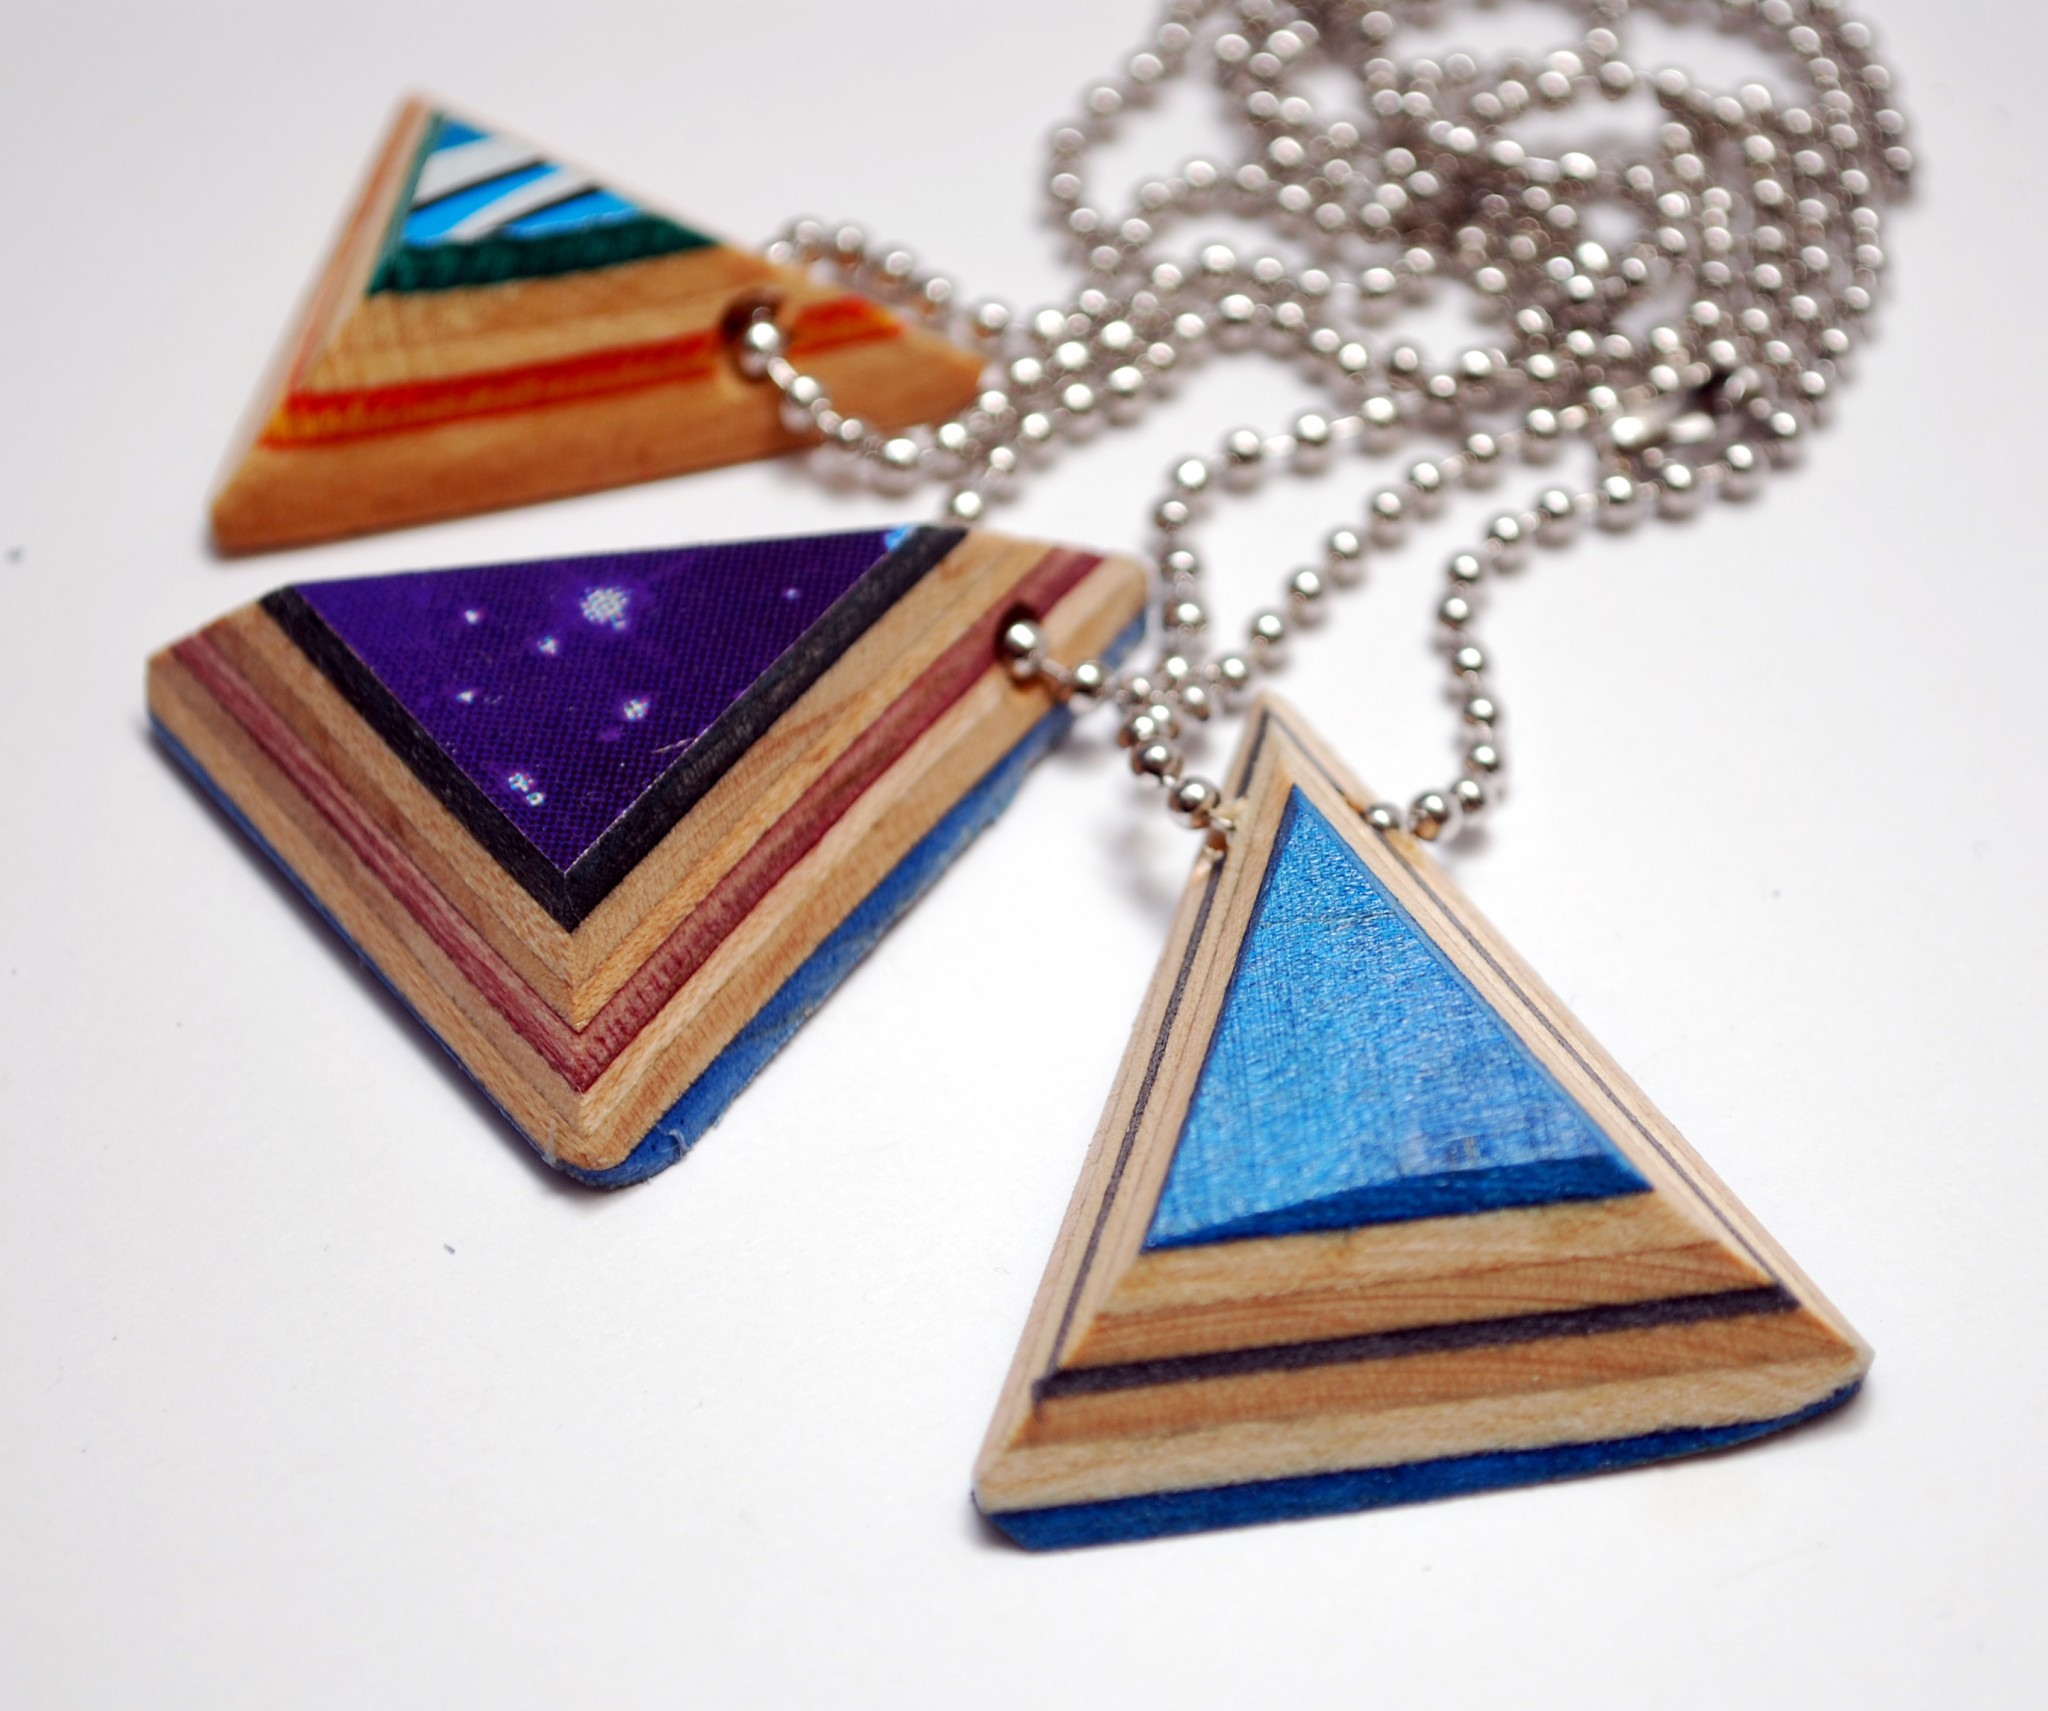 recycled skateboards, skater, gifts, skateboarding, repurposed, necklace, jewelry